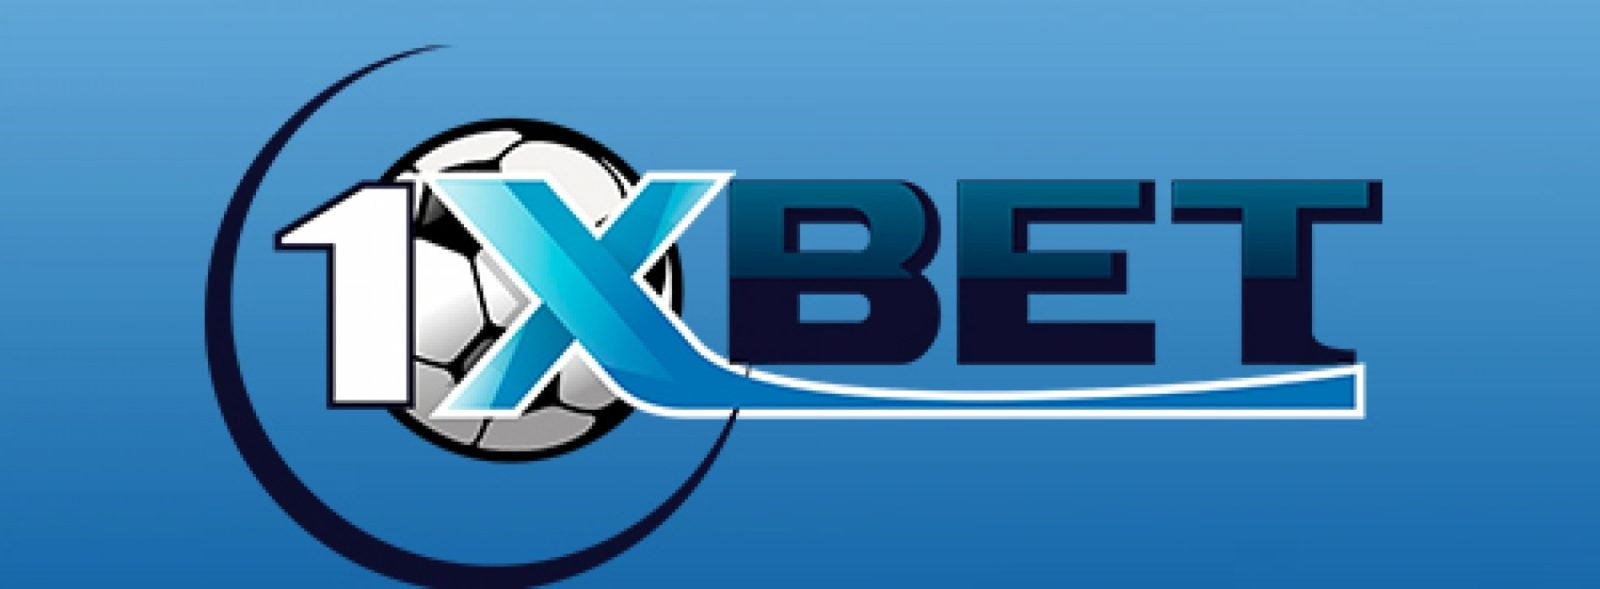 1xbet зеркало рабочее android